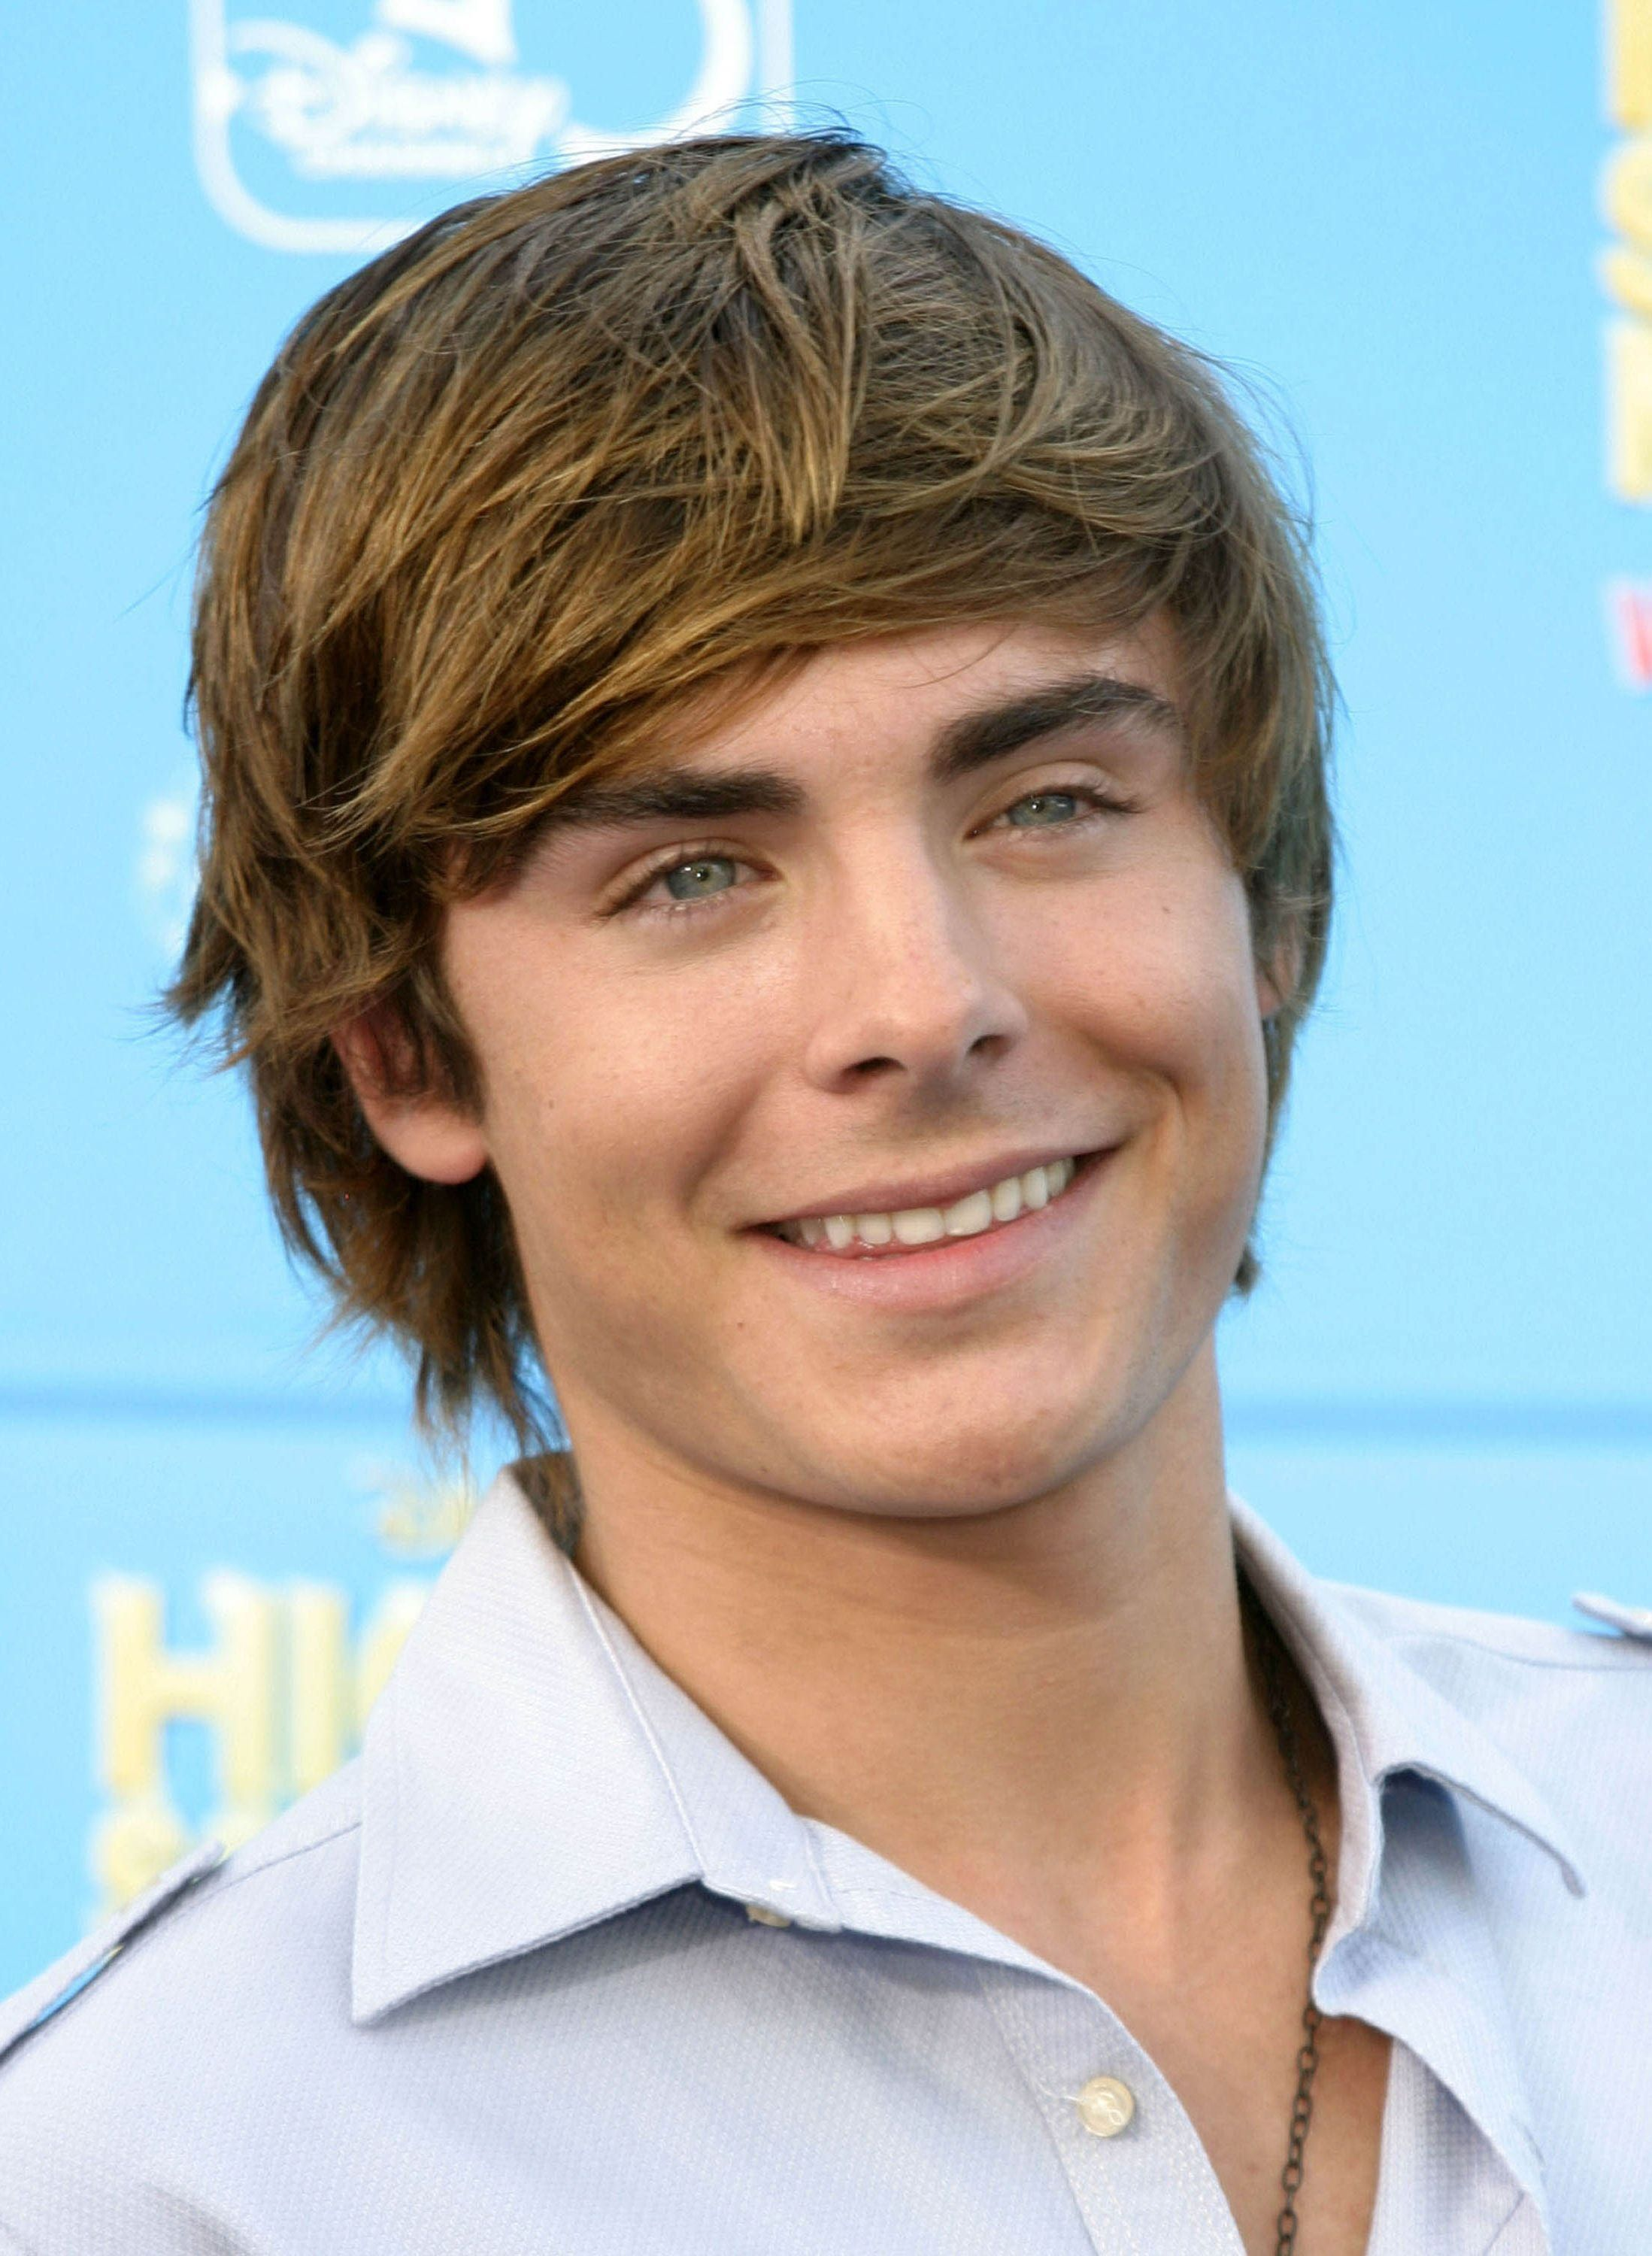 101 Best Hairstyles for Teenage Boys - The Ultimate Guide ...